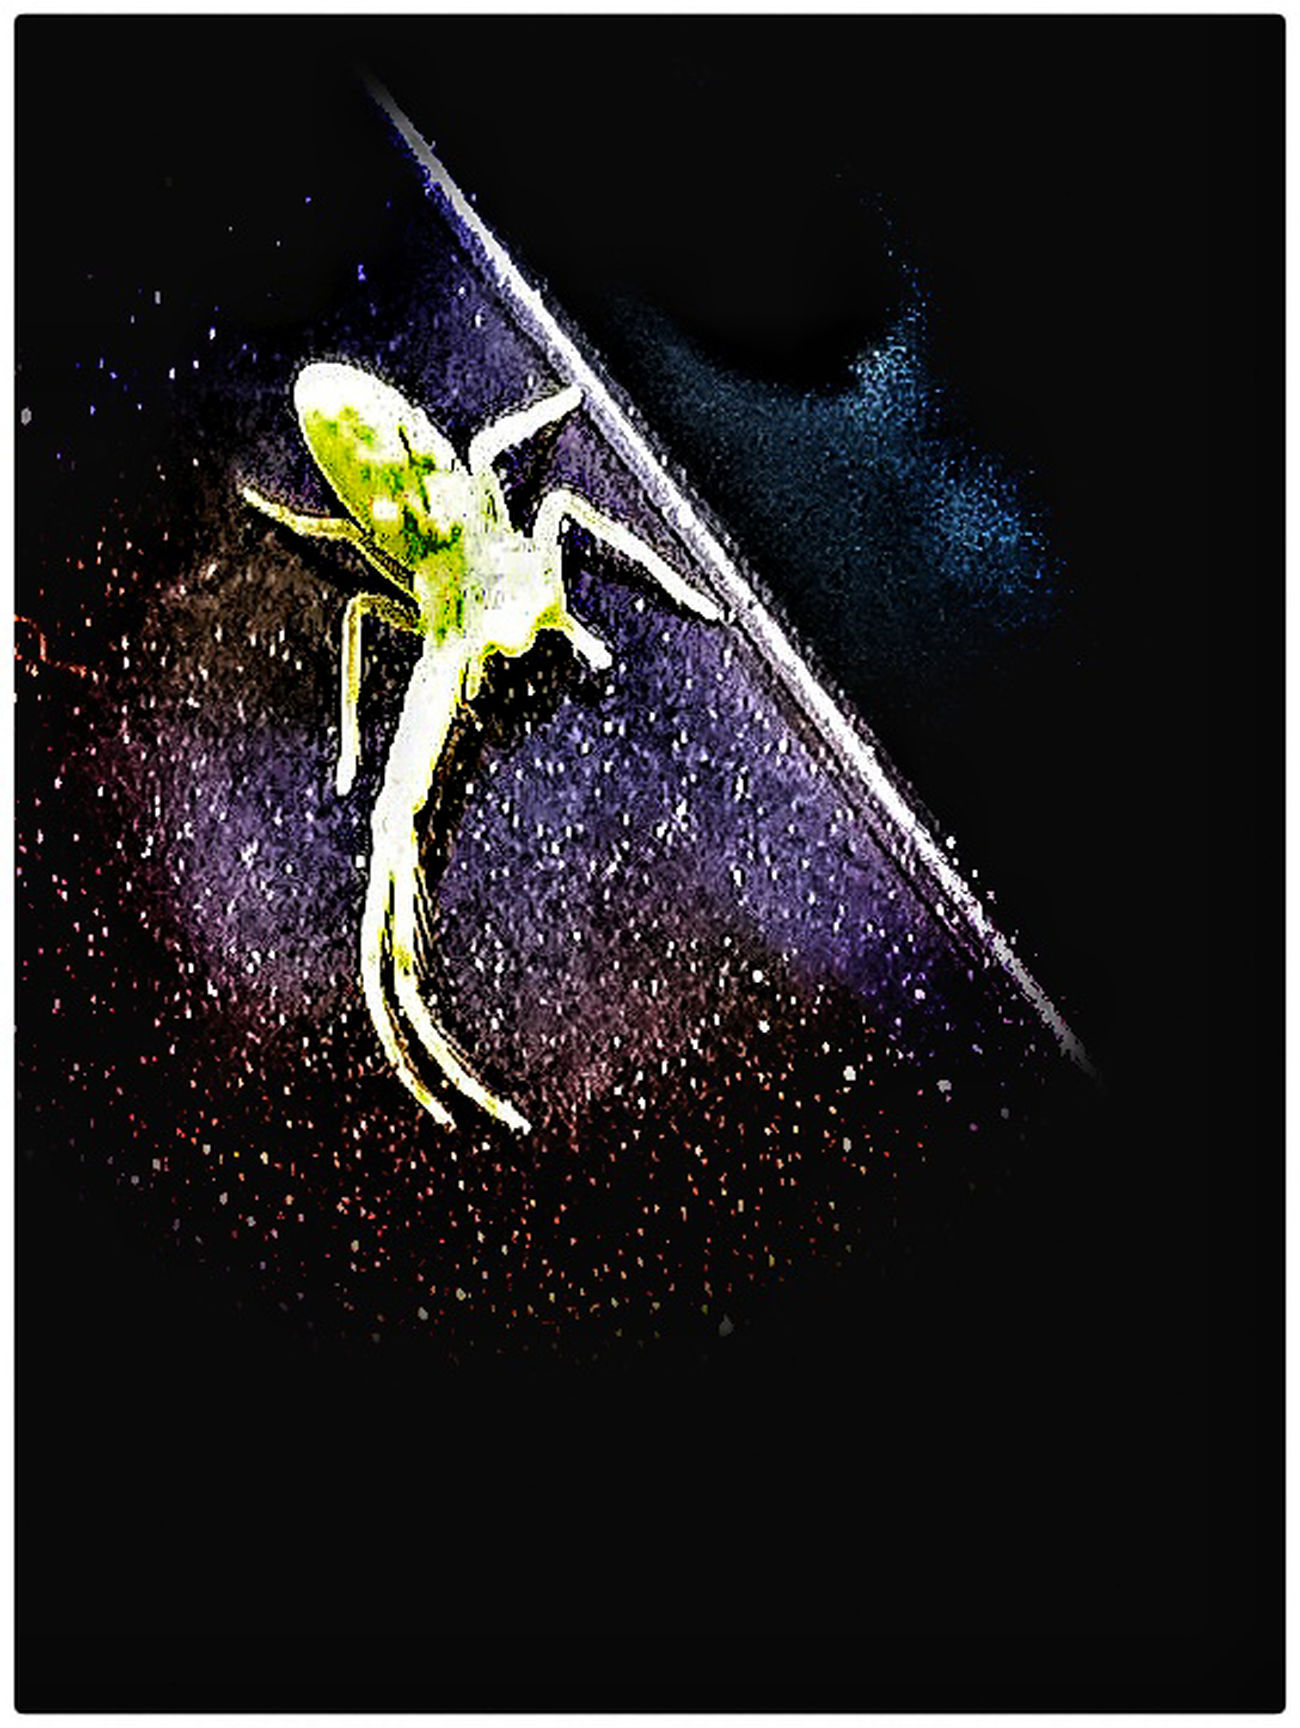 A tiny fluorescent green spider. Spider Fluorescent Light Animals Spiderworld Close-up No People Animal Themes Night Digitally Generated Nature Outdoors Lifeisbeautiful Life Colour Of Life Beauty In Nature Nature HuaweiP9